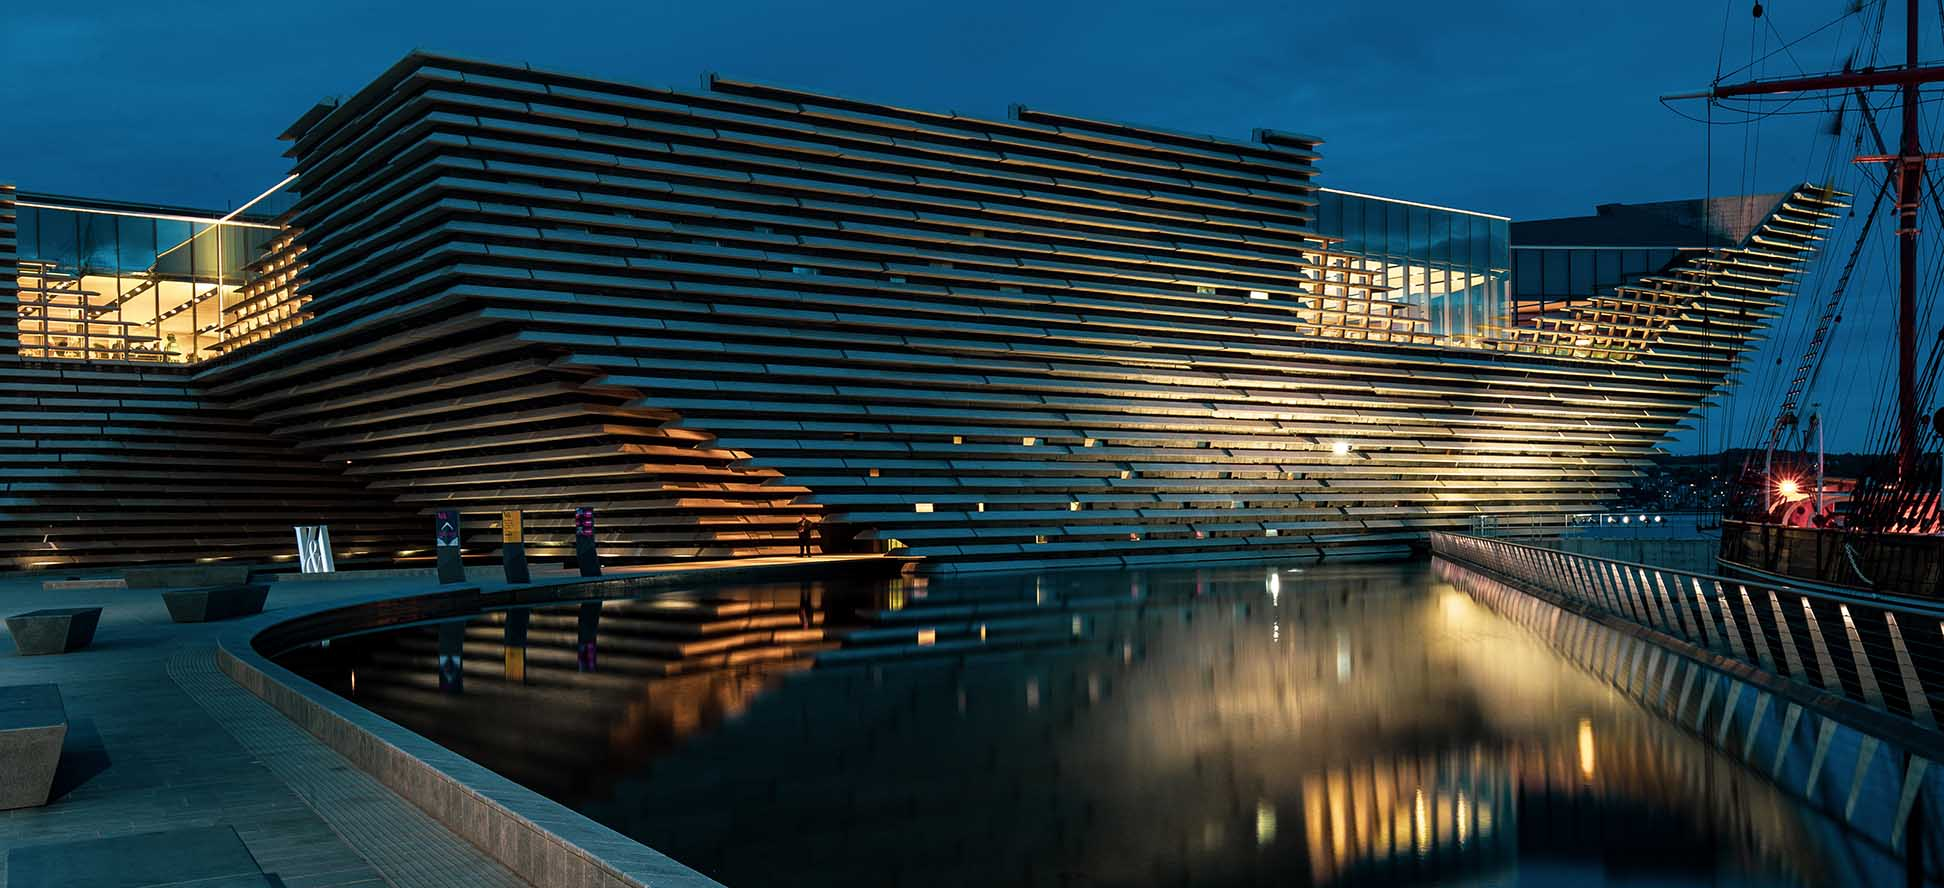 V&A Museum Dundee at night by James Thompson